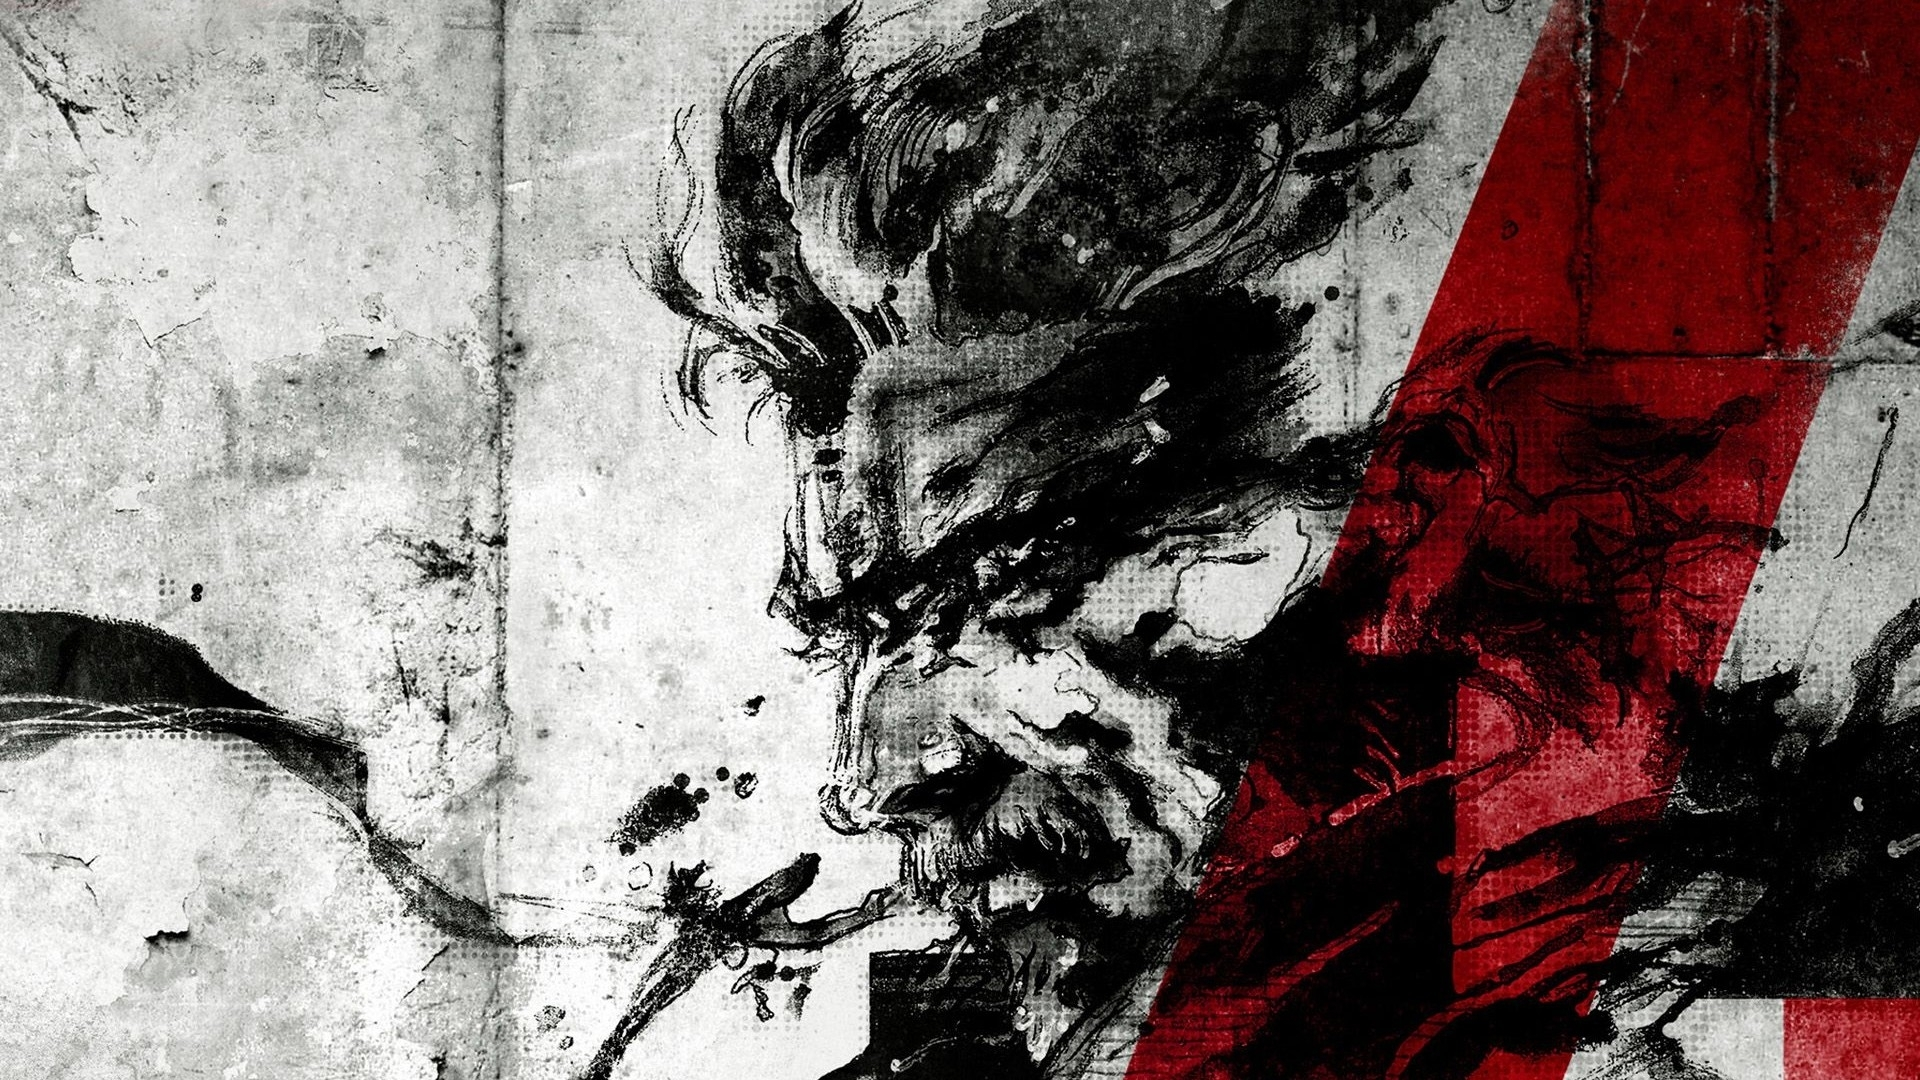 metal gear solid 5 wallpaper 1920x1080 hd wallpaper, background images